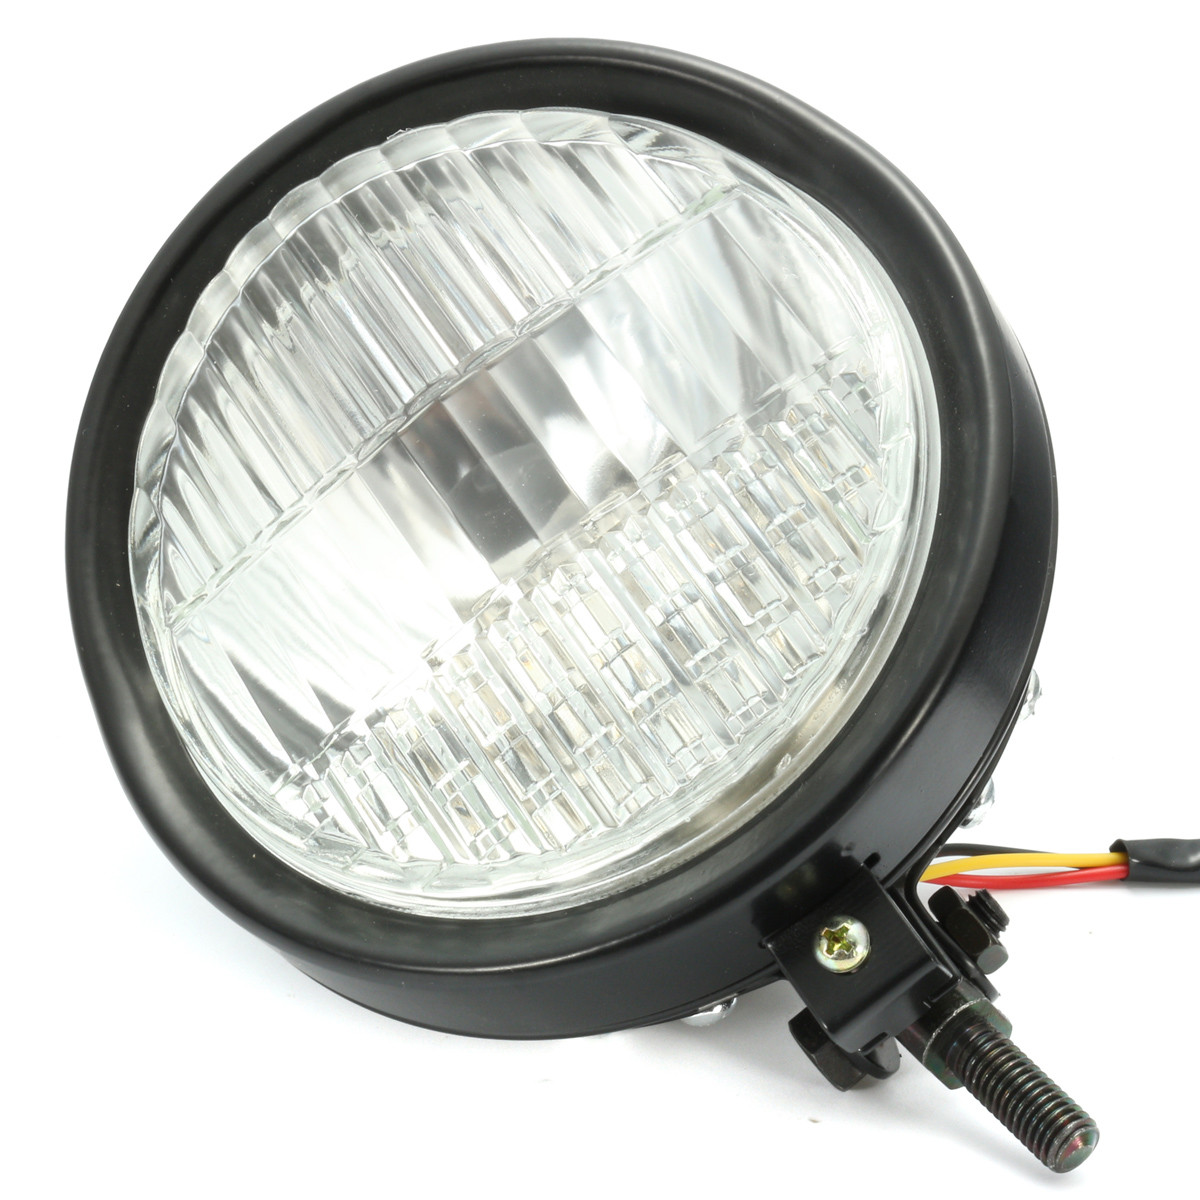 35W 5.75 inch Motorcycle Headlight Headlamp For Harley Bobber Chopper Touring